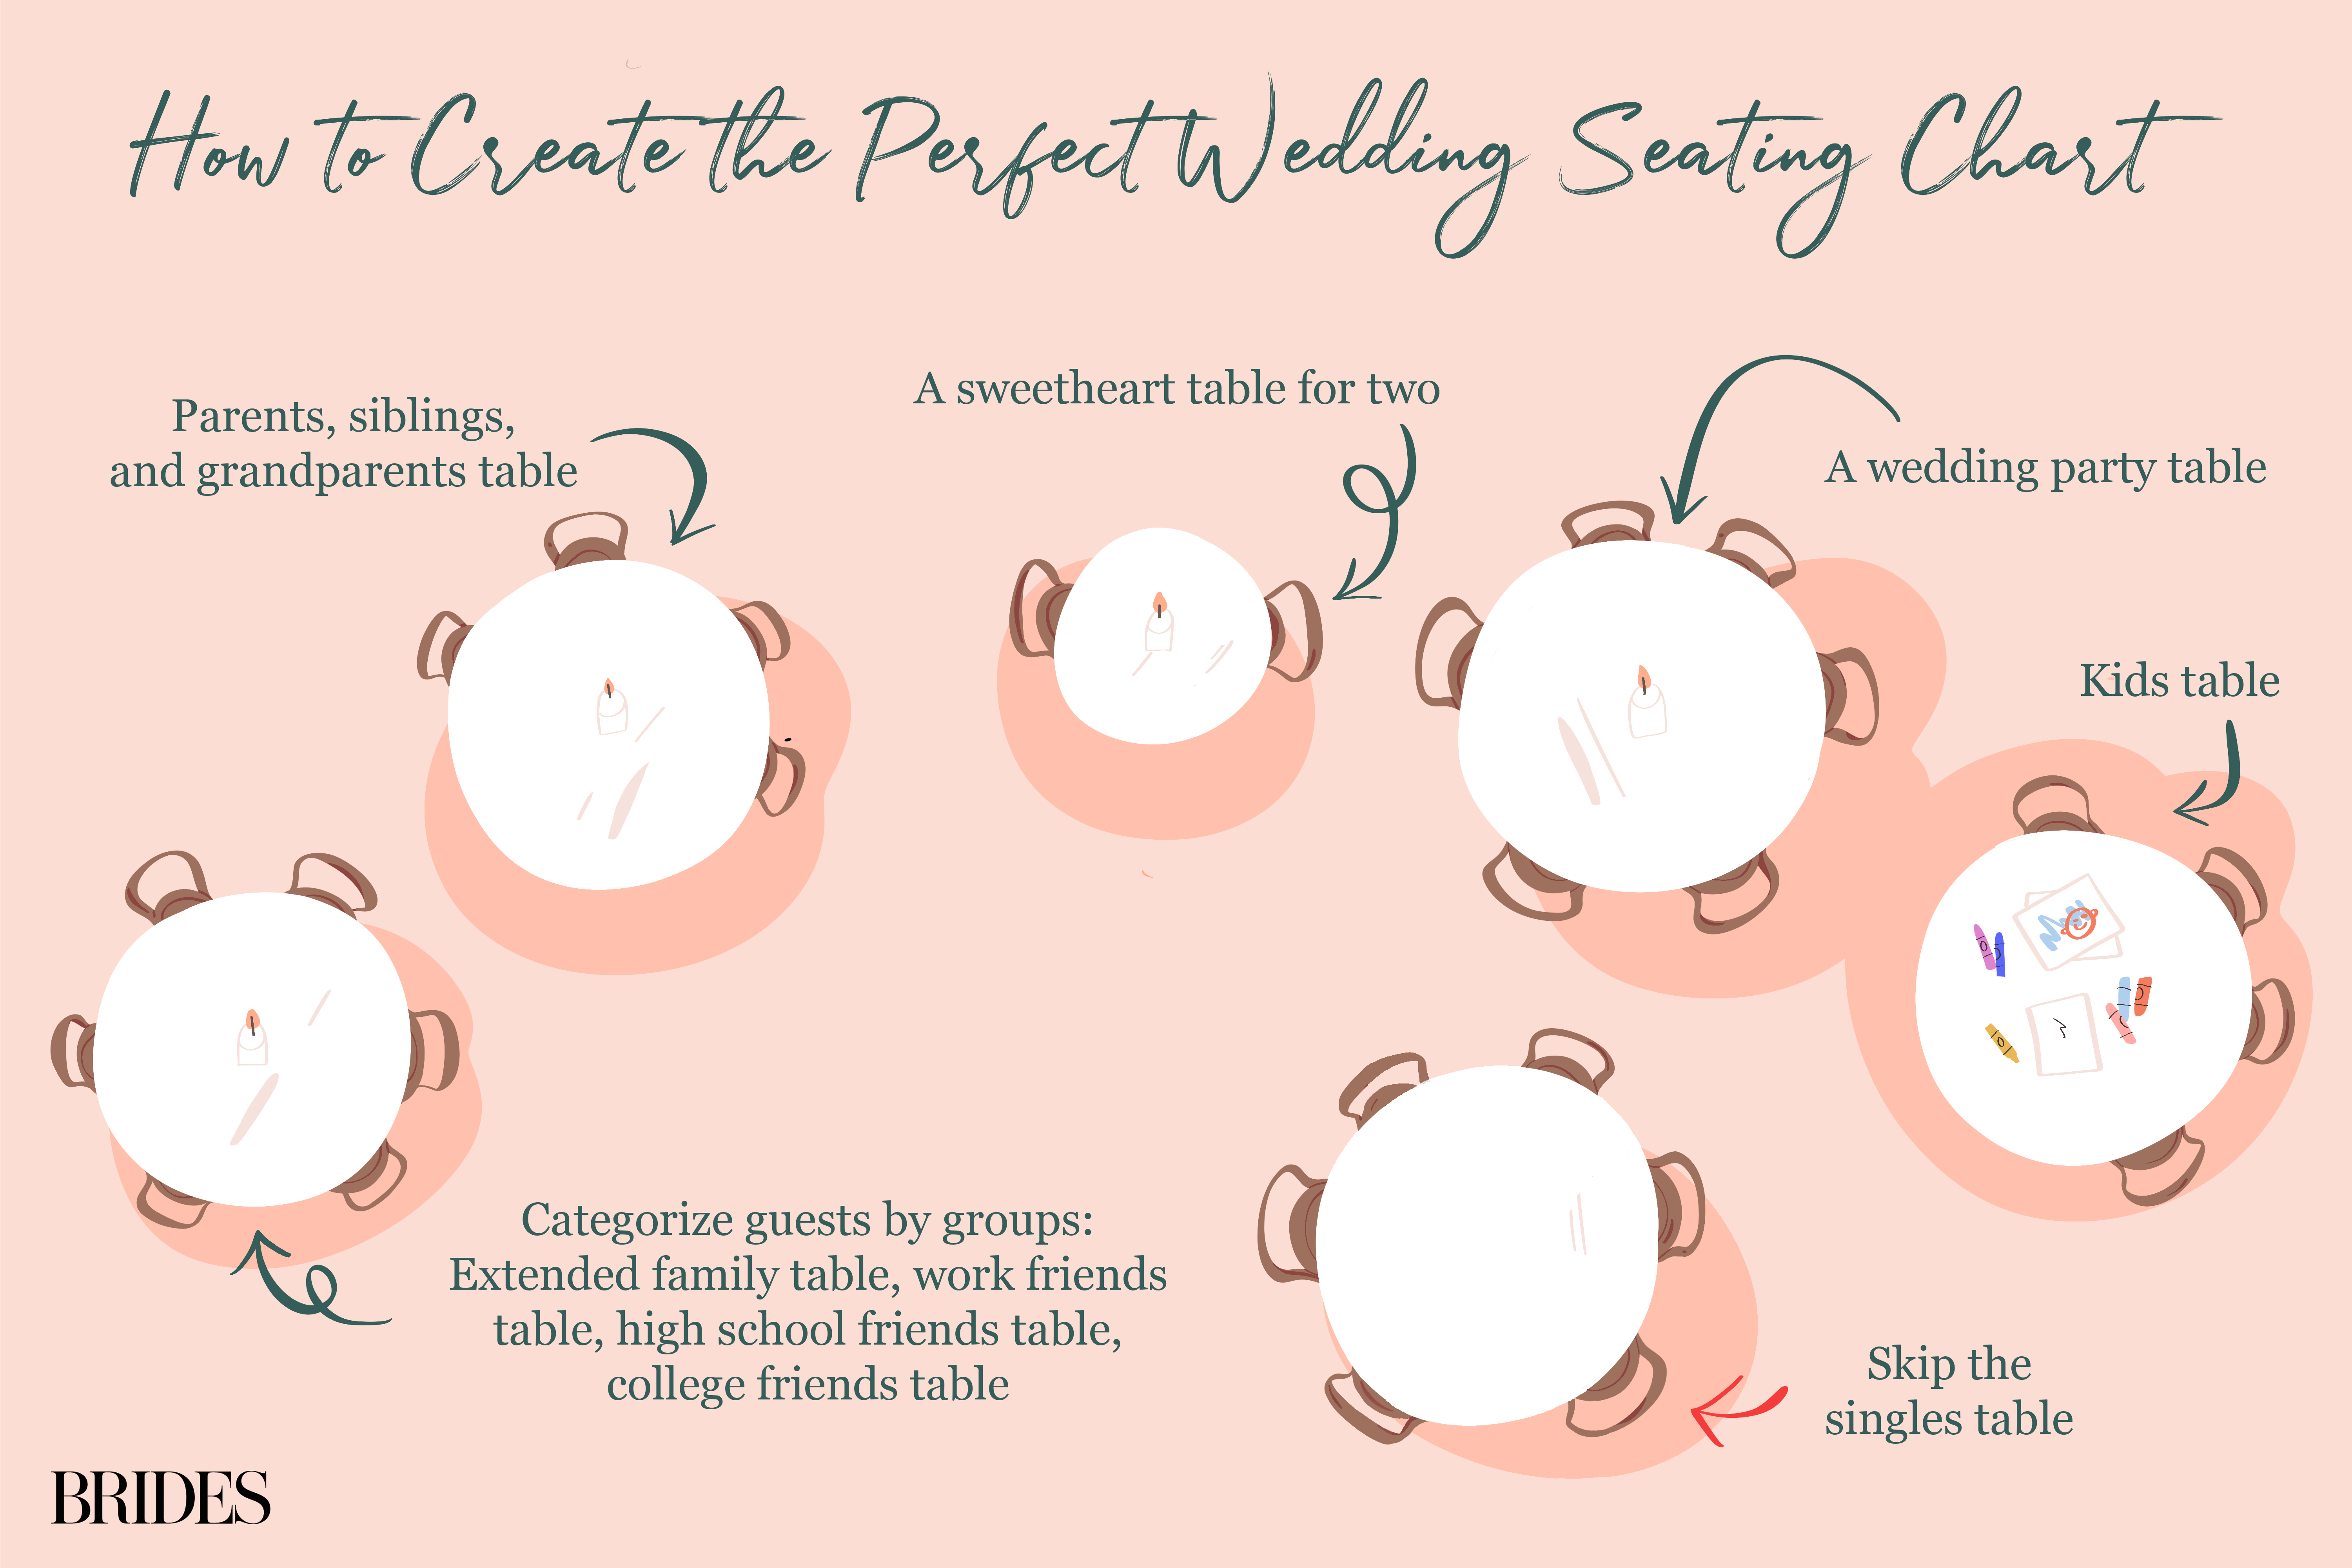 12 Tips for Designing the Ultimate Wedding Seating Chart